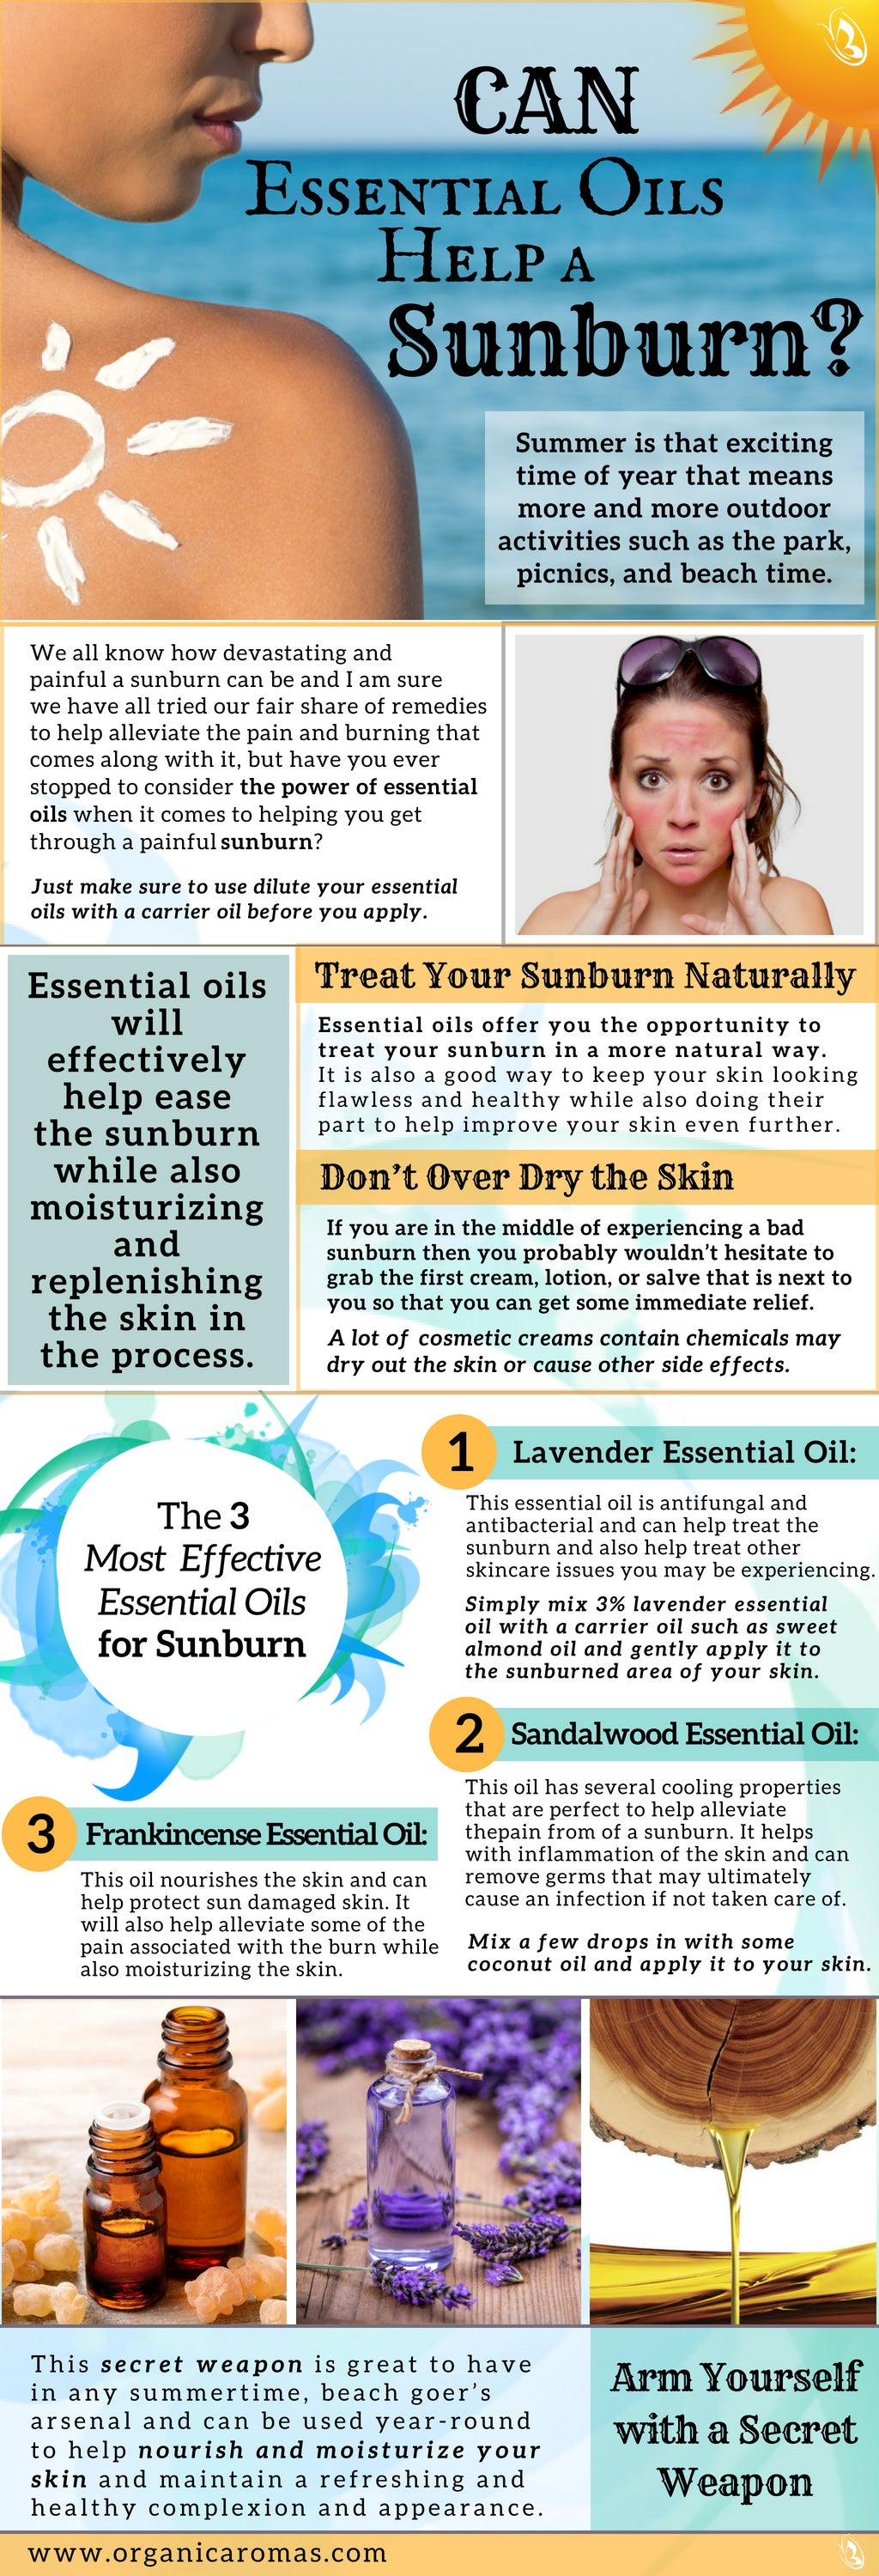 Can Essential Oils Help a Sunburn?